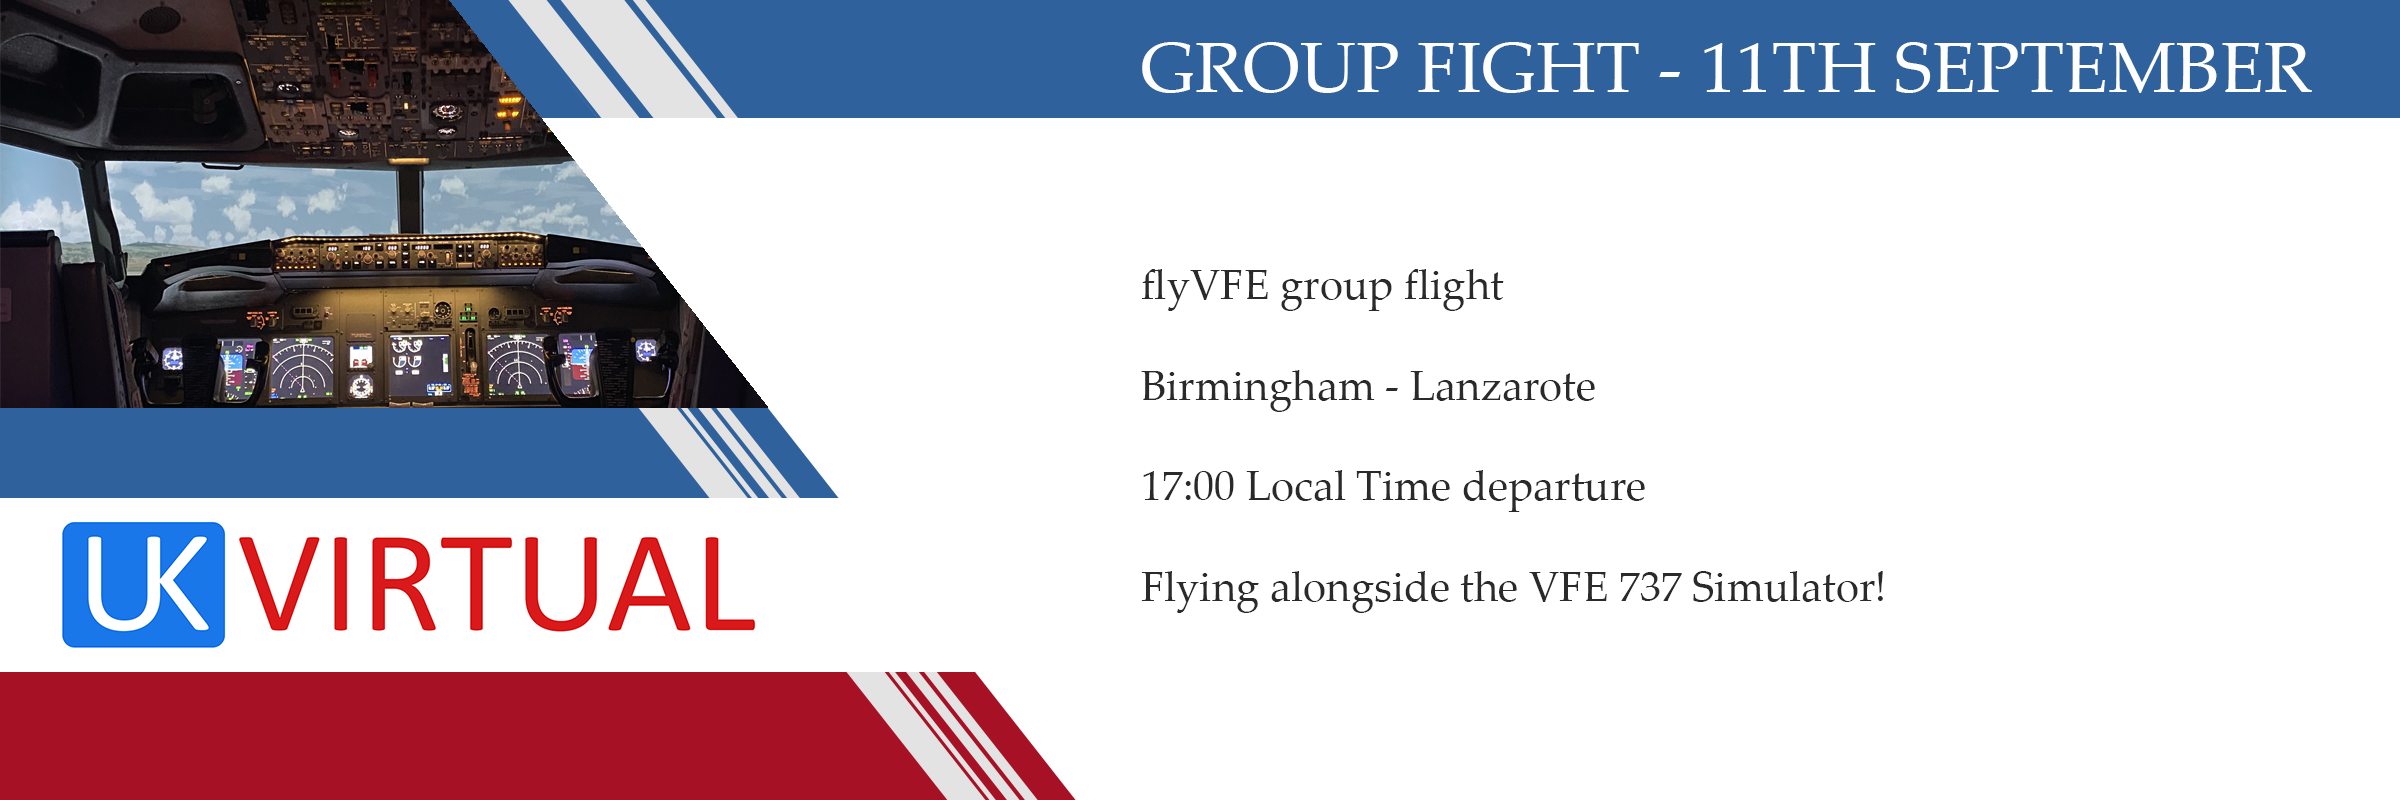 Group flight – Friday 11th September